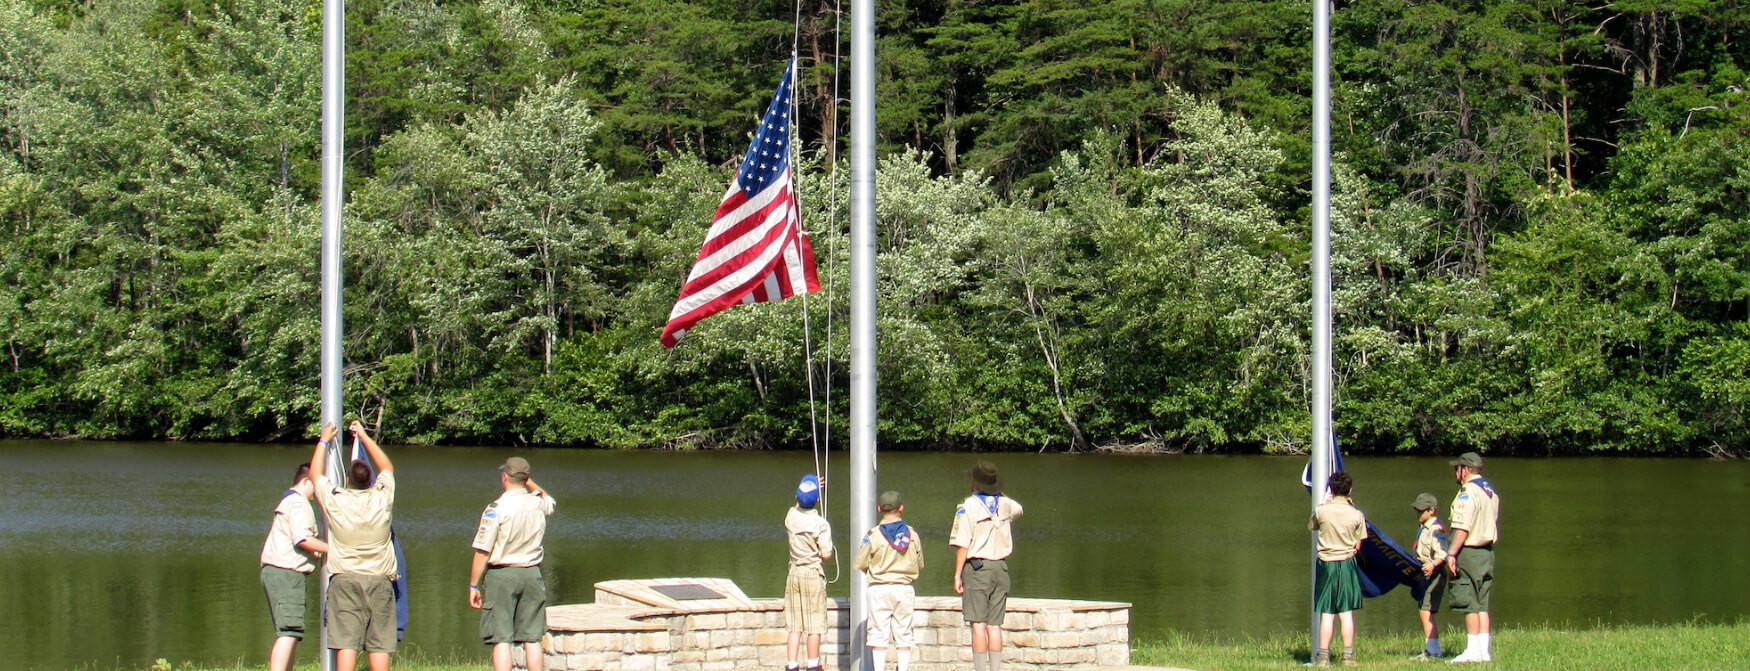 Scouts raise the flags at Camp McKee